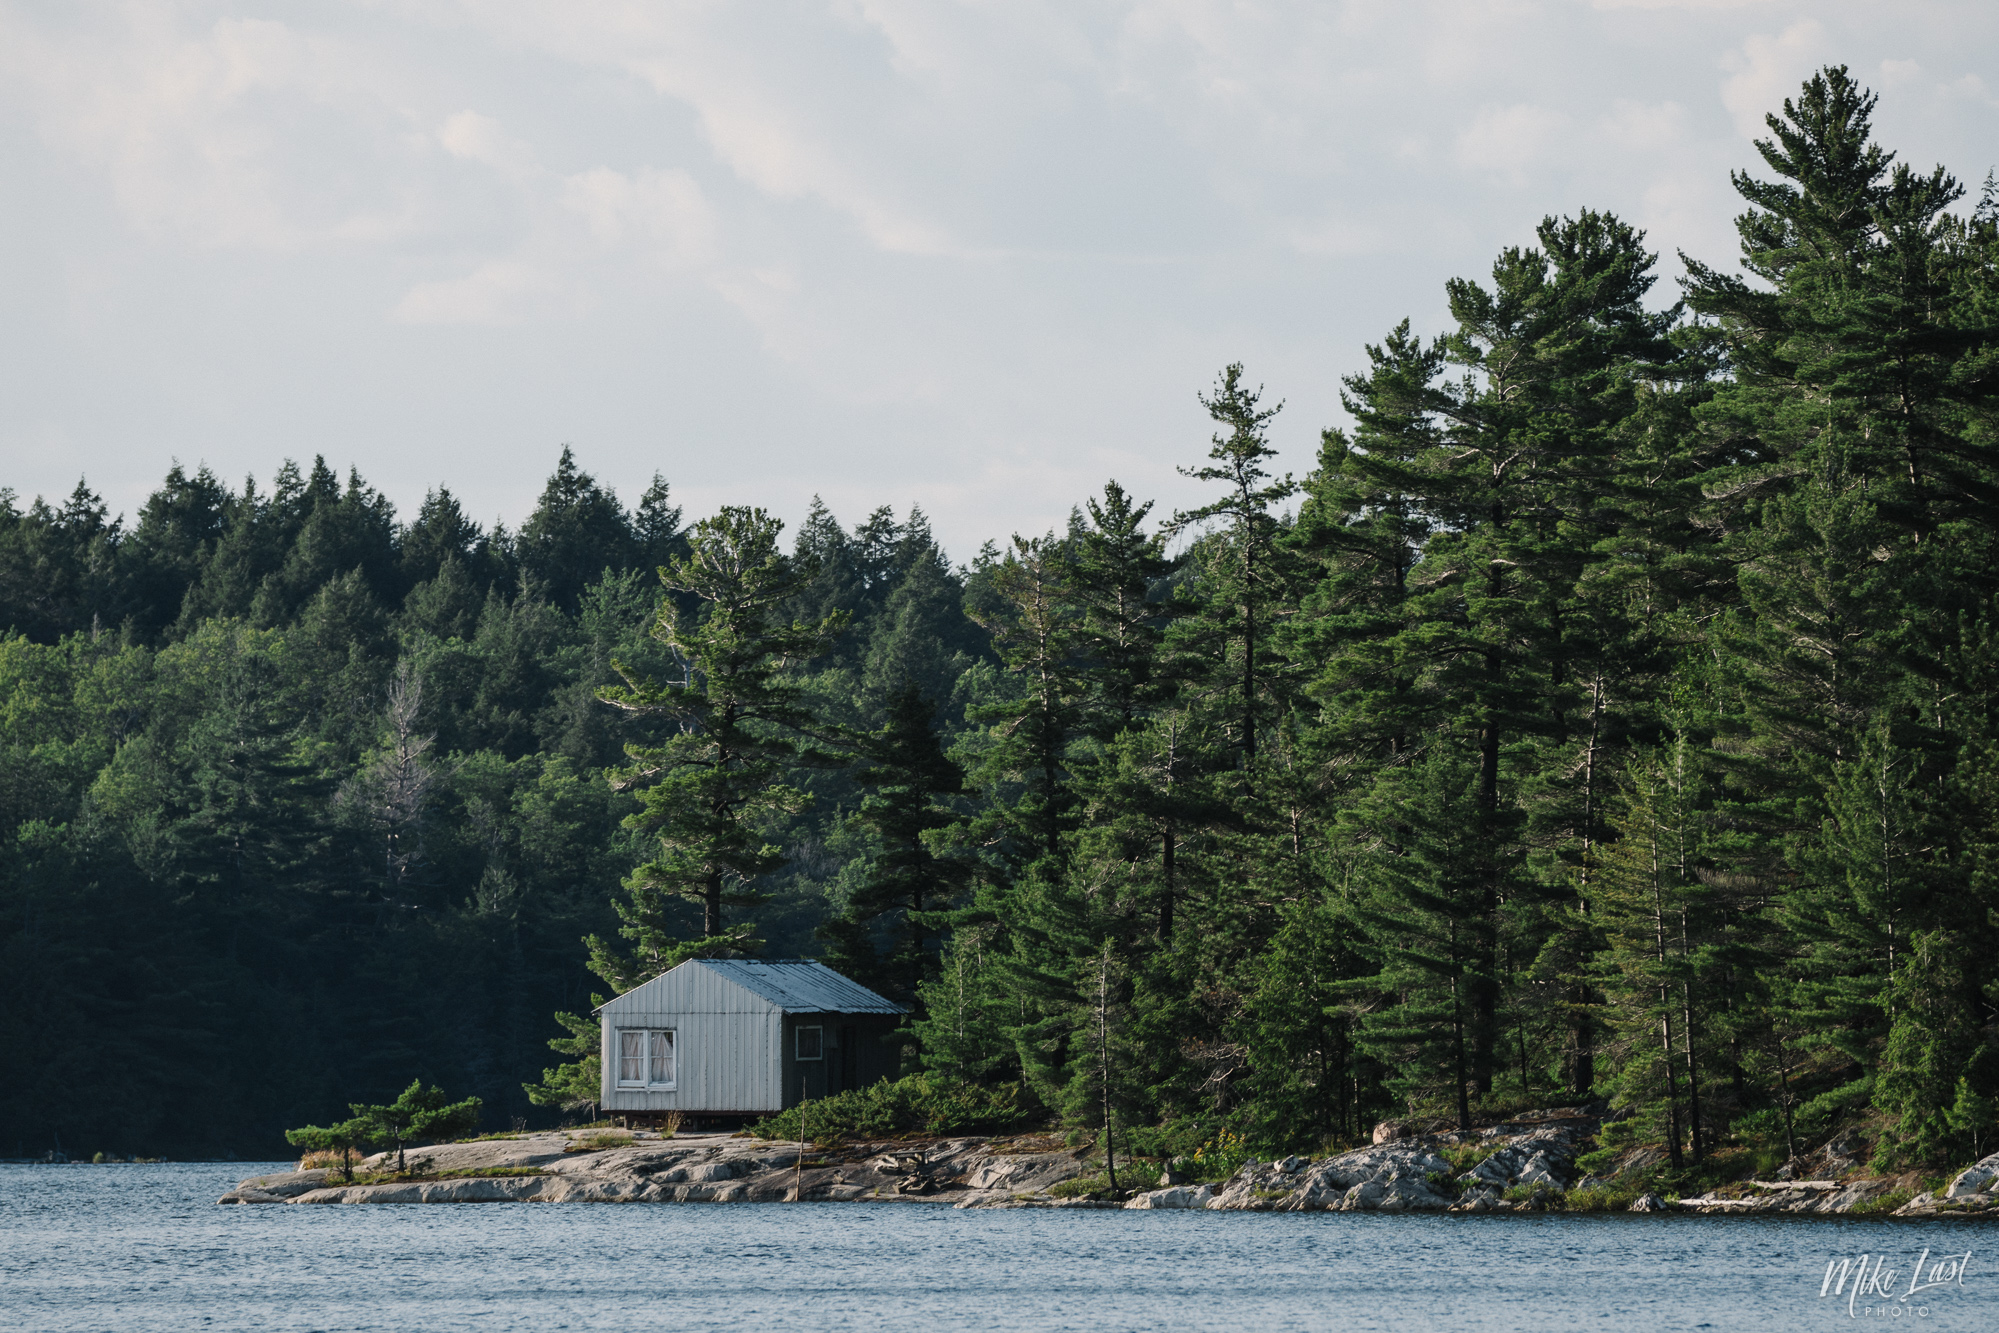 Cabin on Great Mountain Lake - Killarney Provincial Park